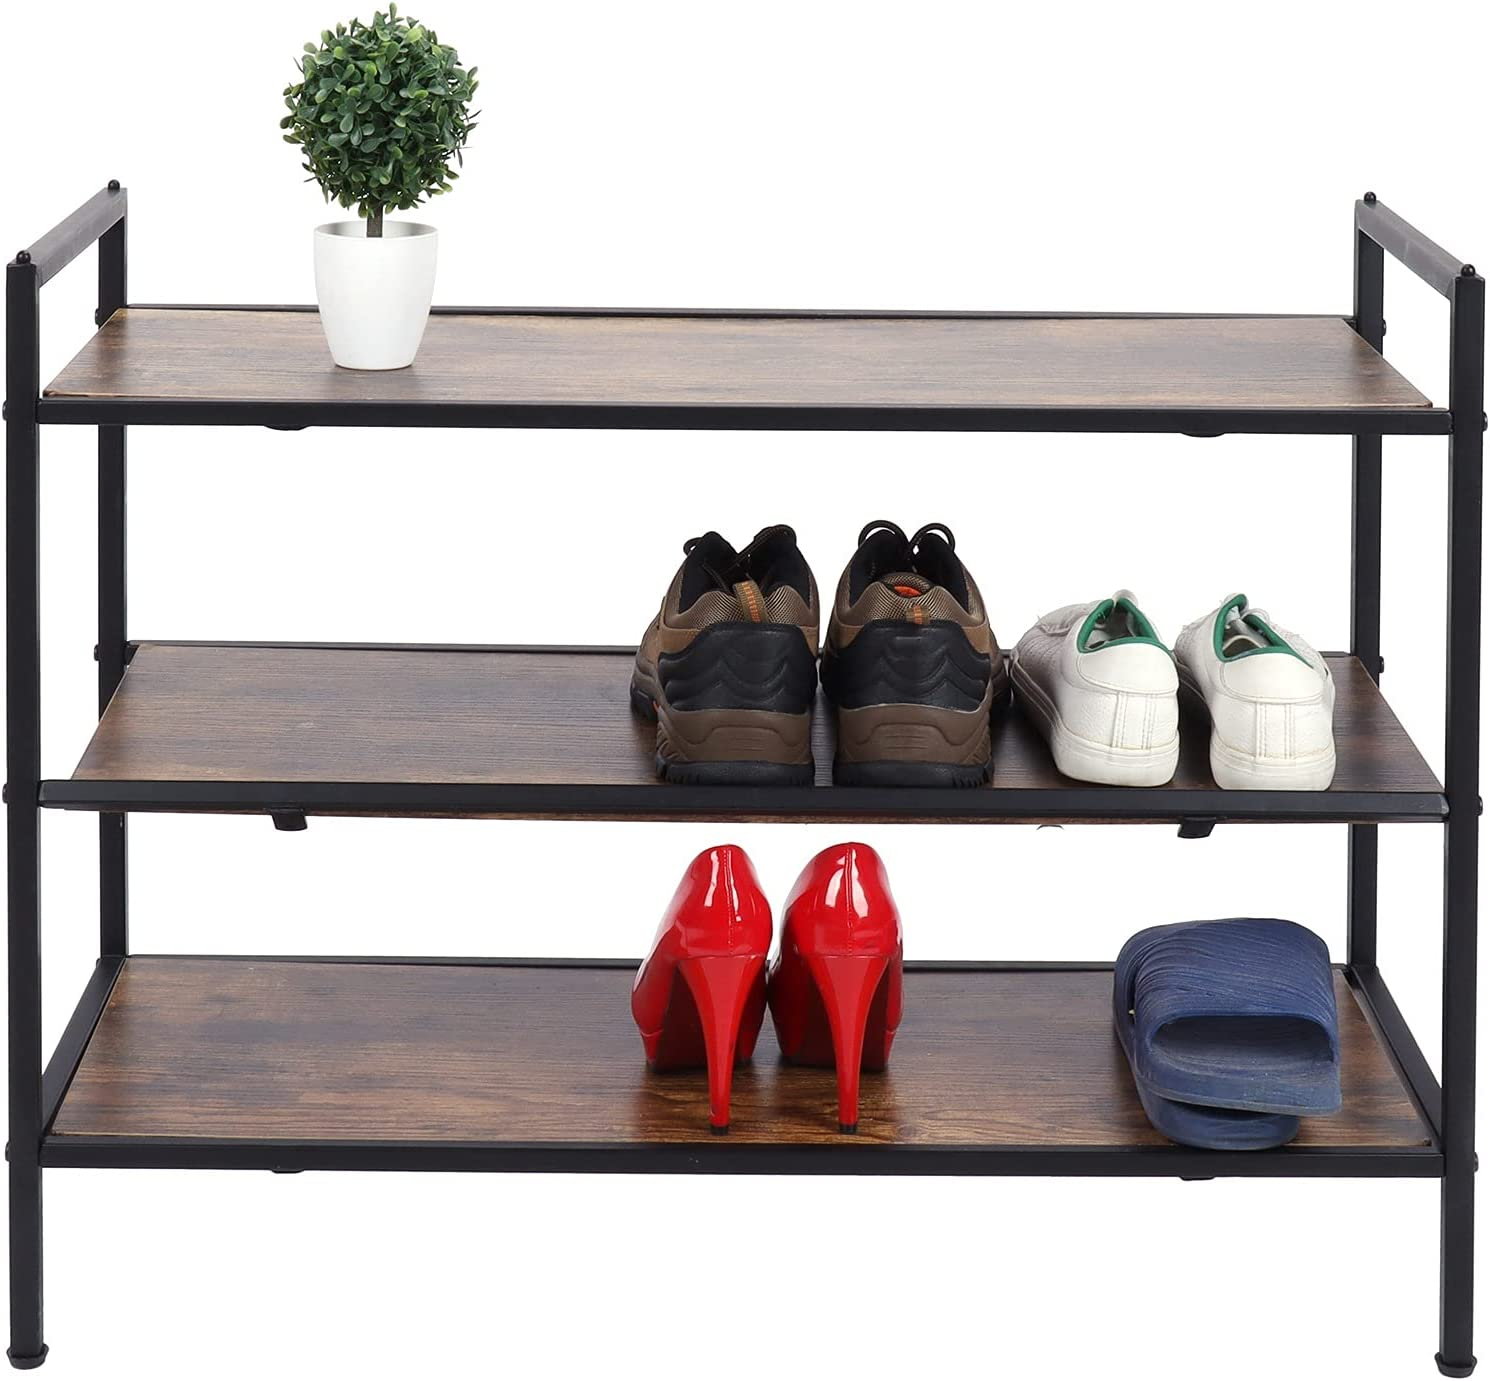 Eulbevoli 3‑Layer Shoe Rack Popular product Shelf to Easy Stackable Install W Japan's largest assortment